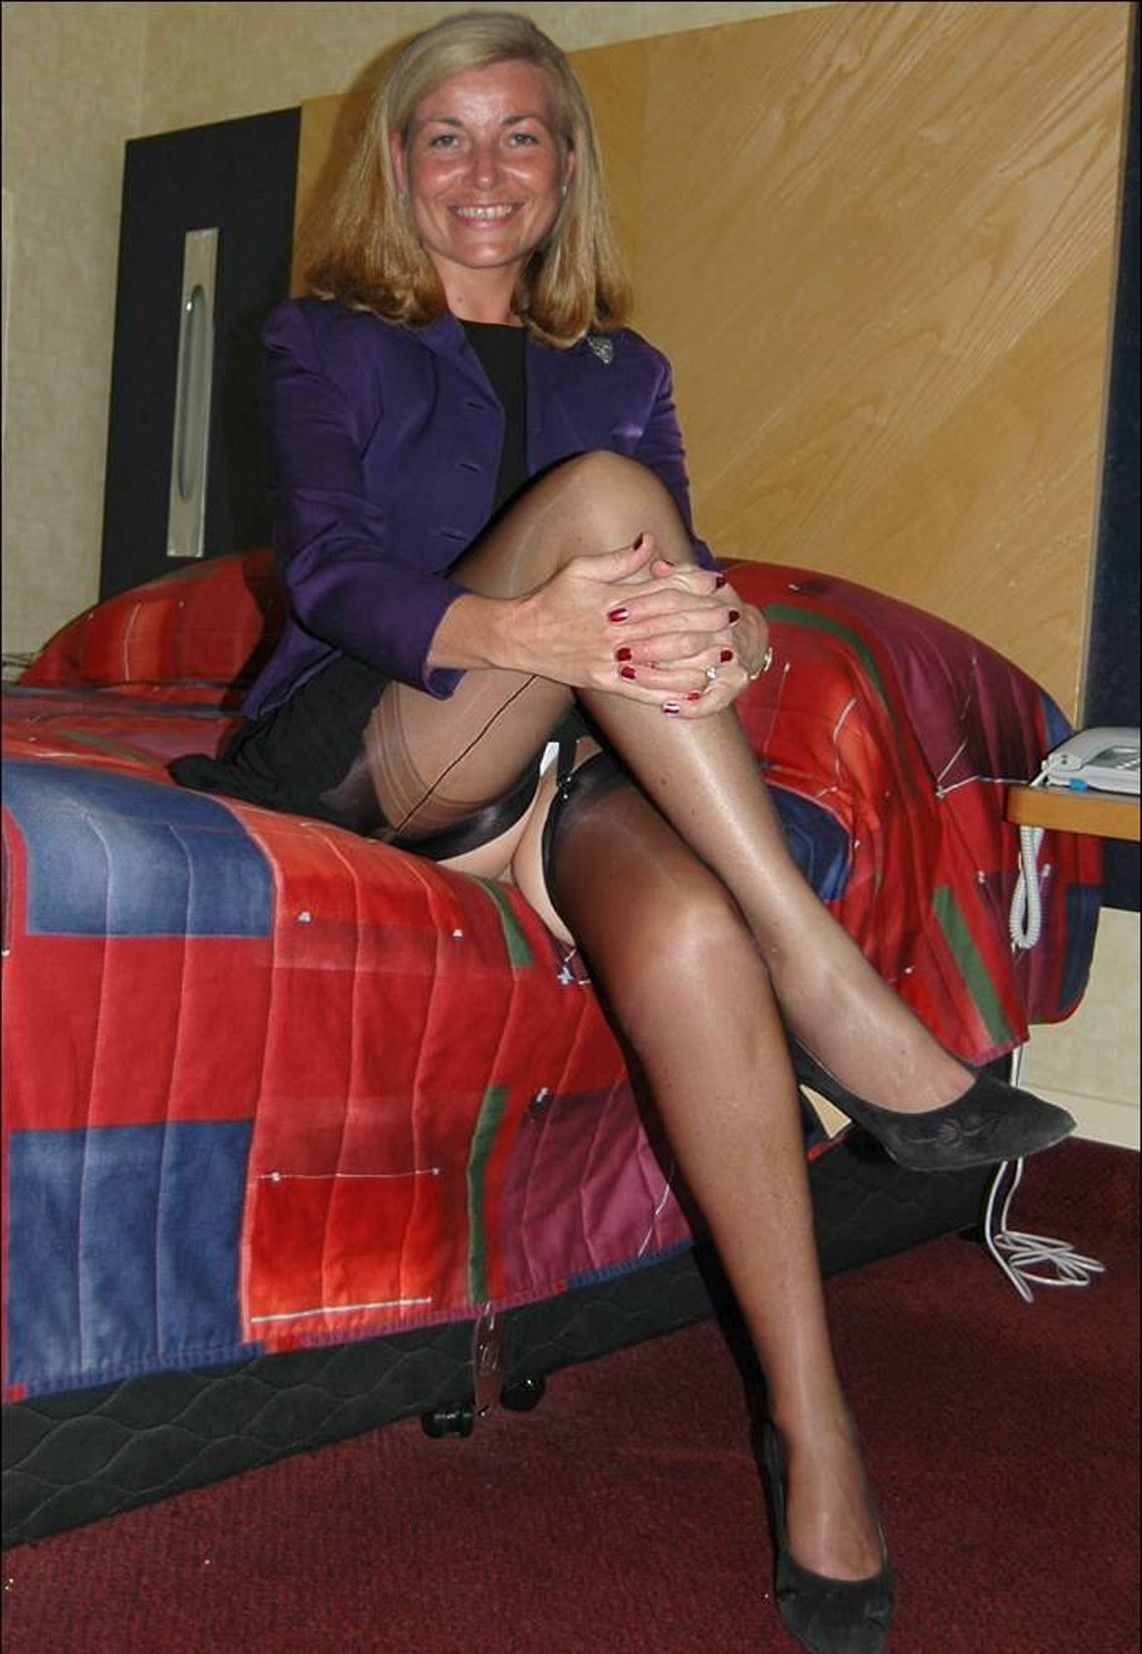 blonde stocking mature upskirt | hot mature ladies, milfs and gilfs